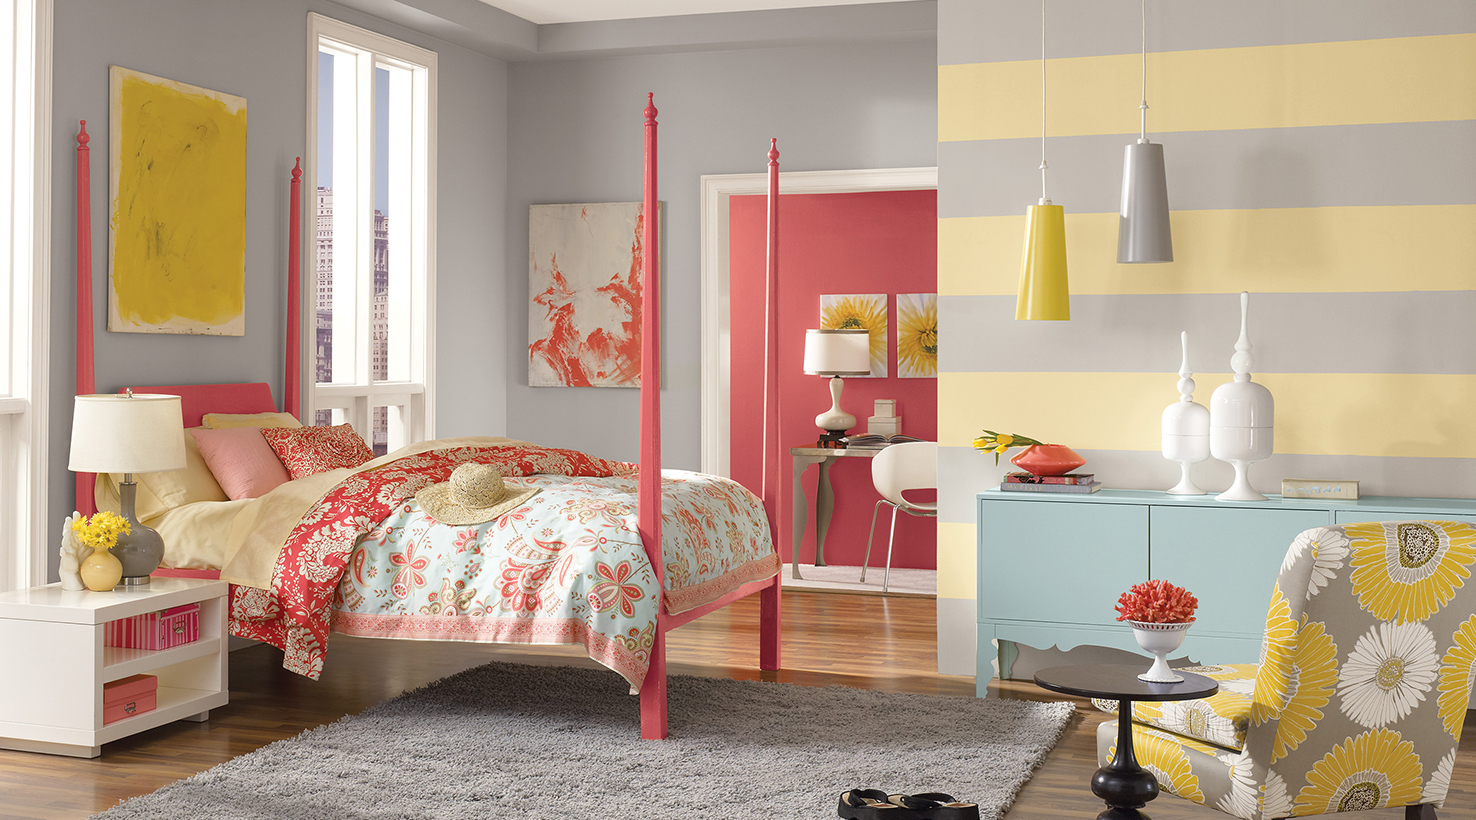 Teen room paint color ideas inspiration gallery sherwin williams - Colors for kids room ...